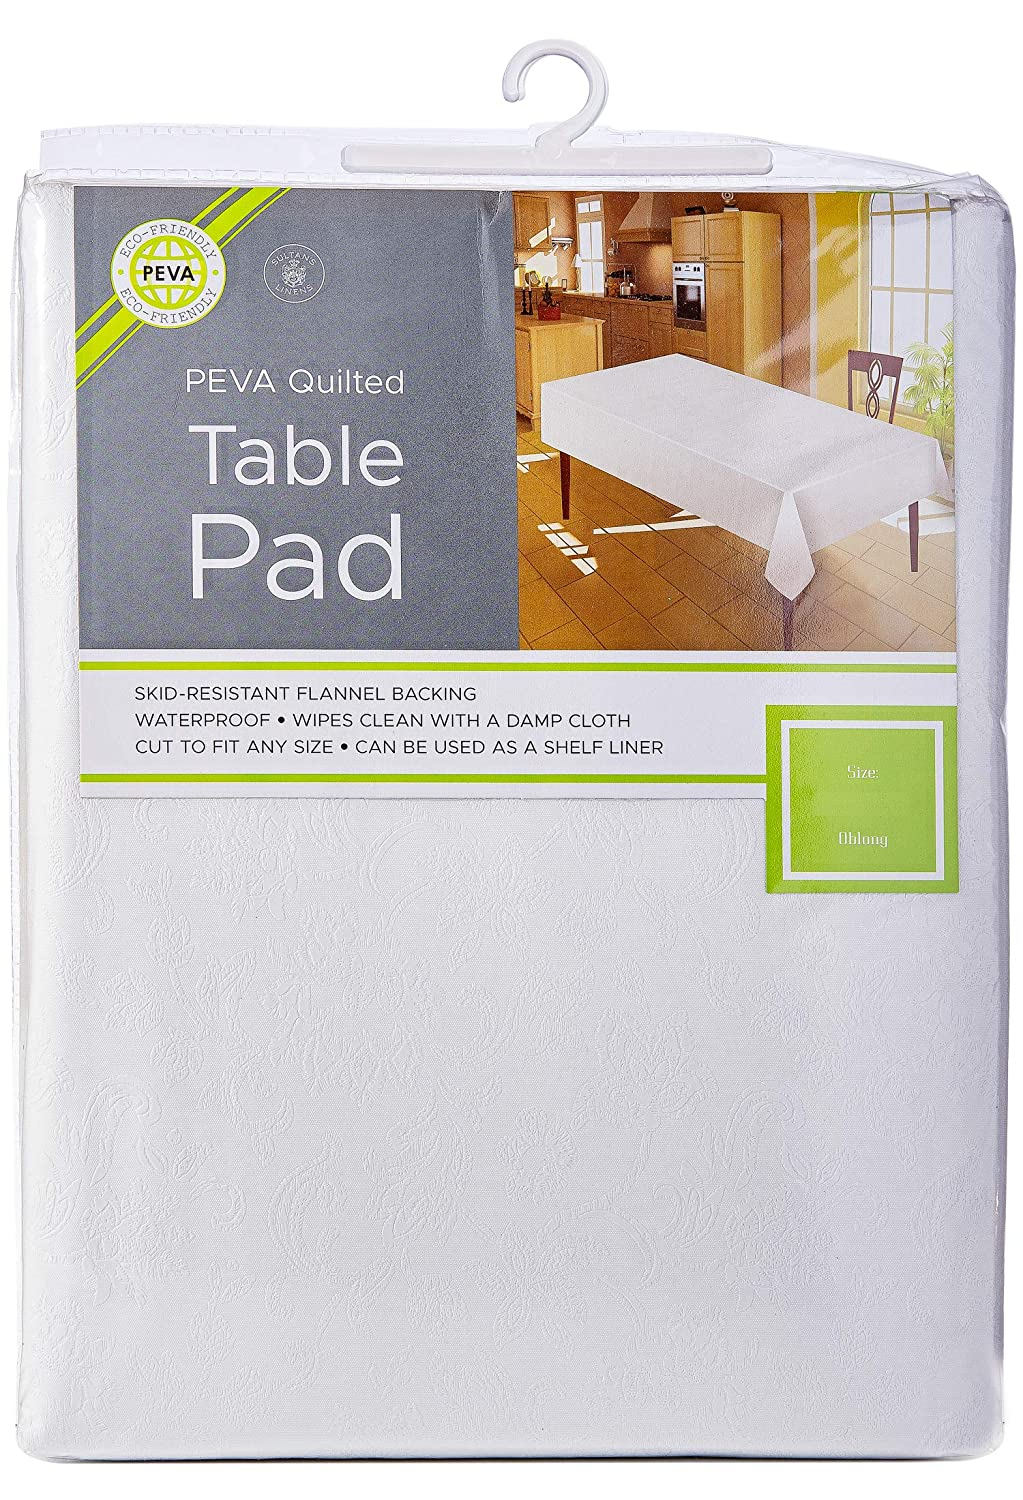 Sultan's Linens Eco-Friendly Peva Table Pad Waterproof Surface with Flannel Backing Floral (104-inch) Sultan's Linens C52-2HB